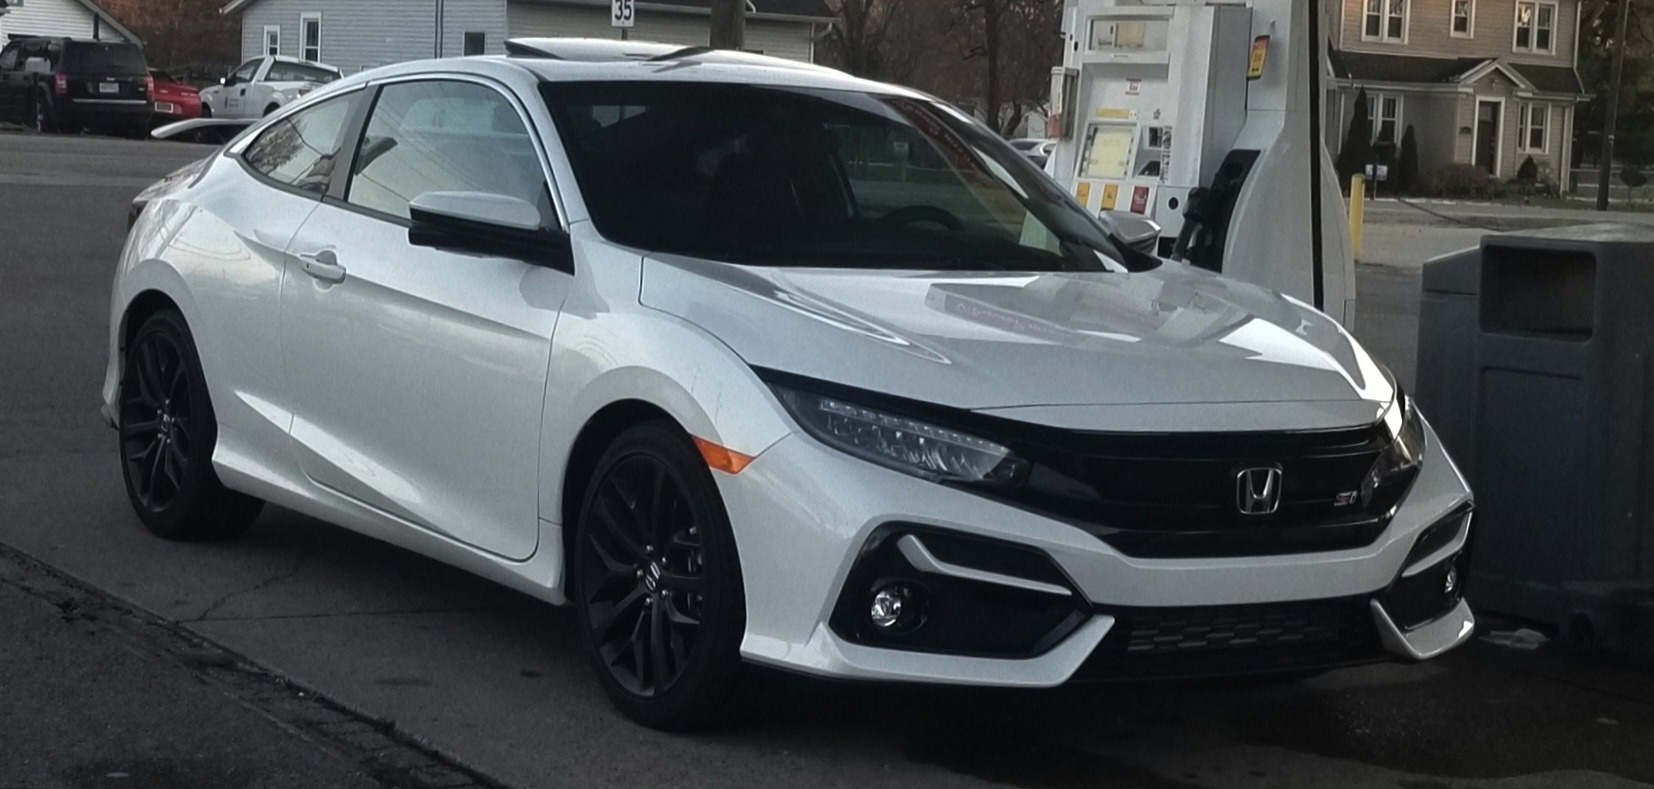 2020 Si Coupe Vs 2018 Si Coupe Comparison Thread Will Update As Things Are Found 2016 Honda Civic Forum 10th Gen Type R Forum Si Forum Civicx Com